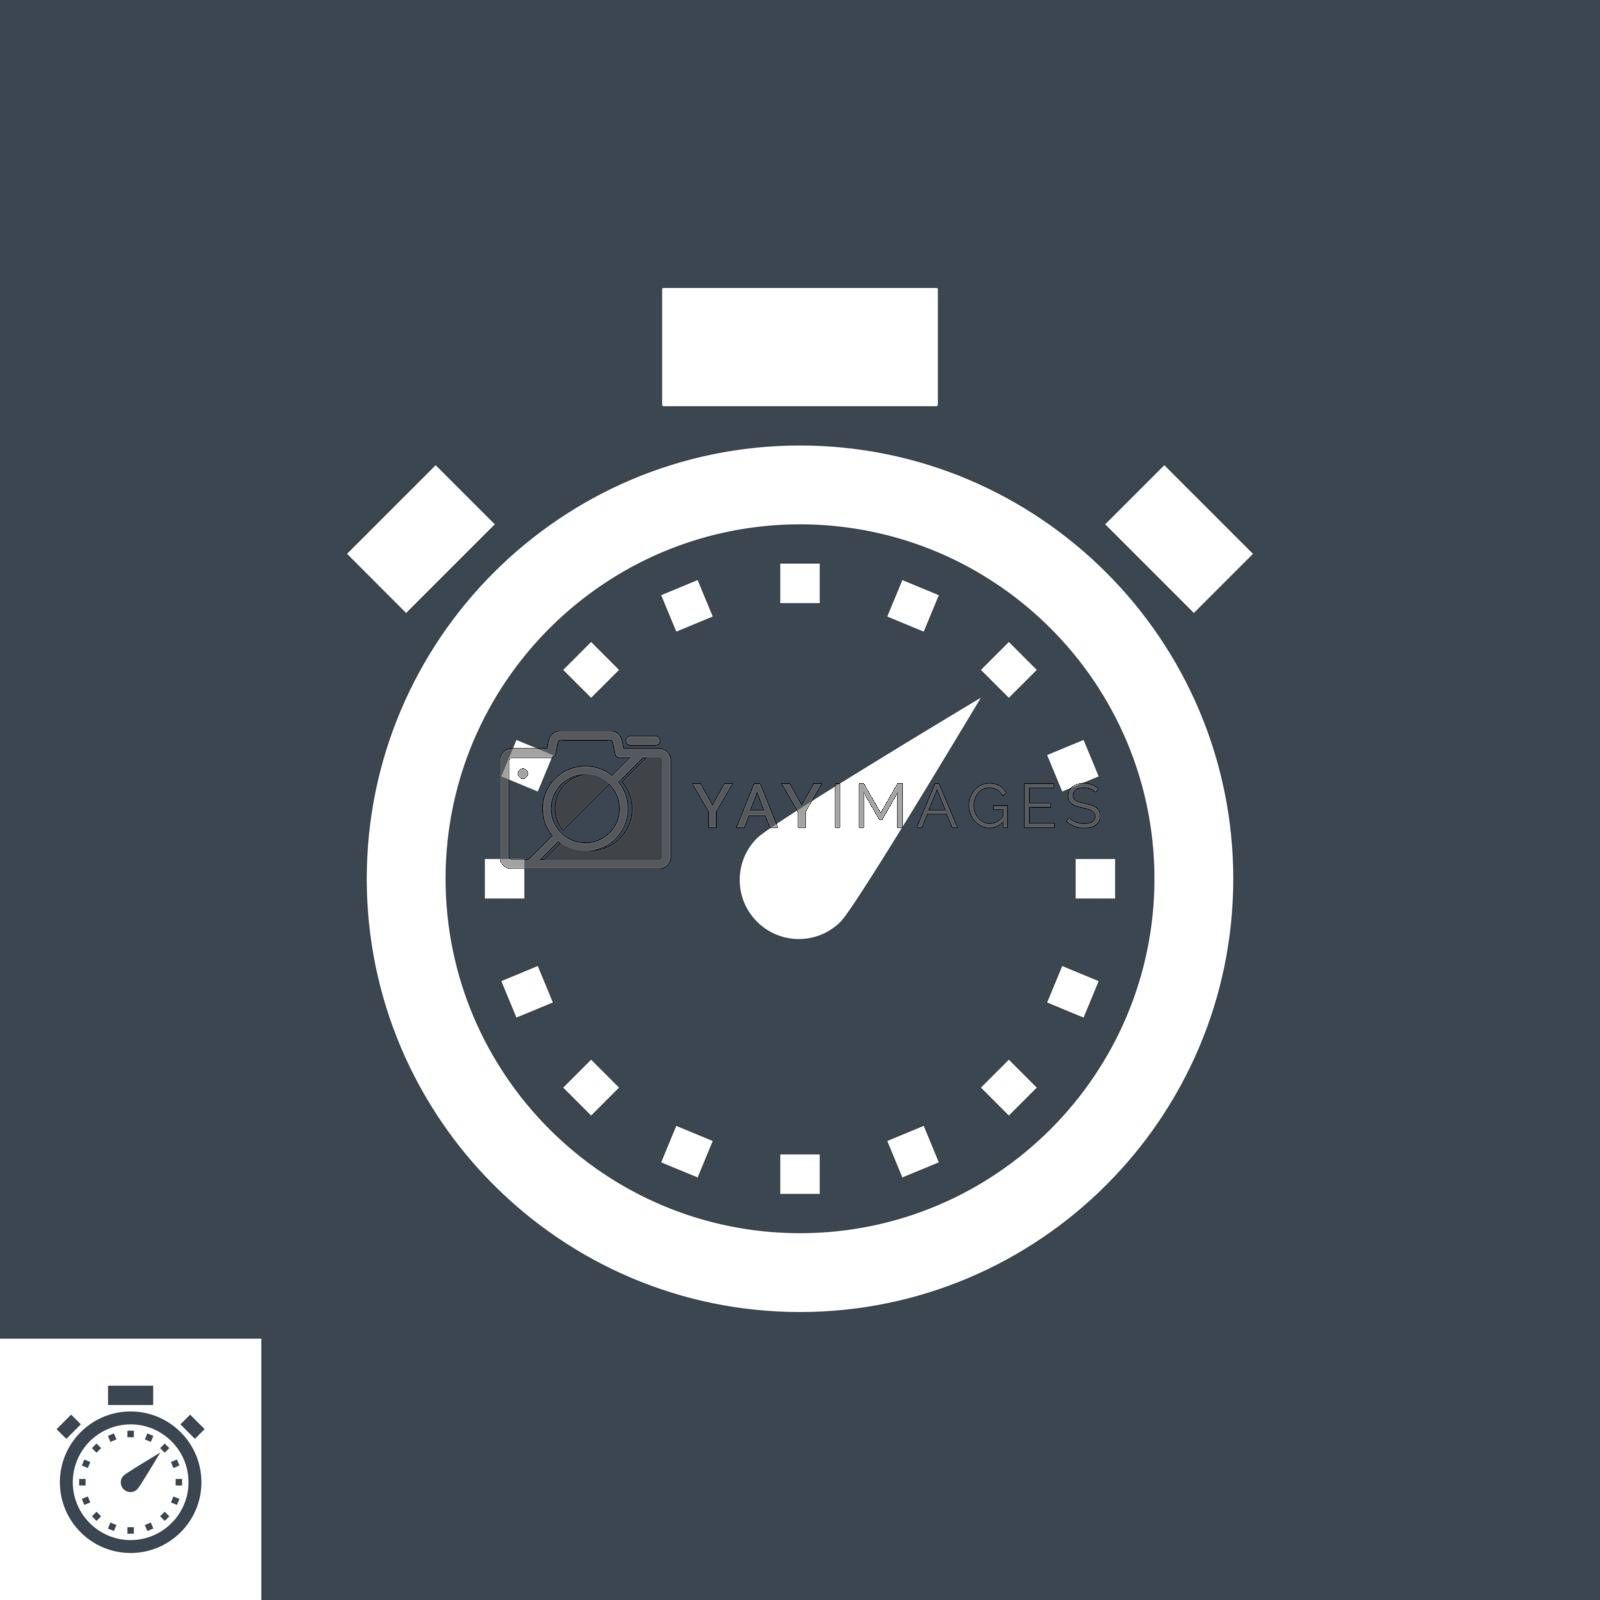 Stopwatch Related Vector Glyph Icon. Isolated on Black Background. Vector Illustration.